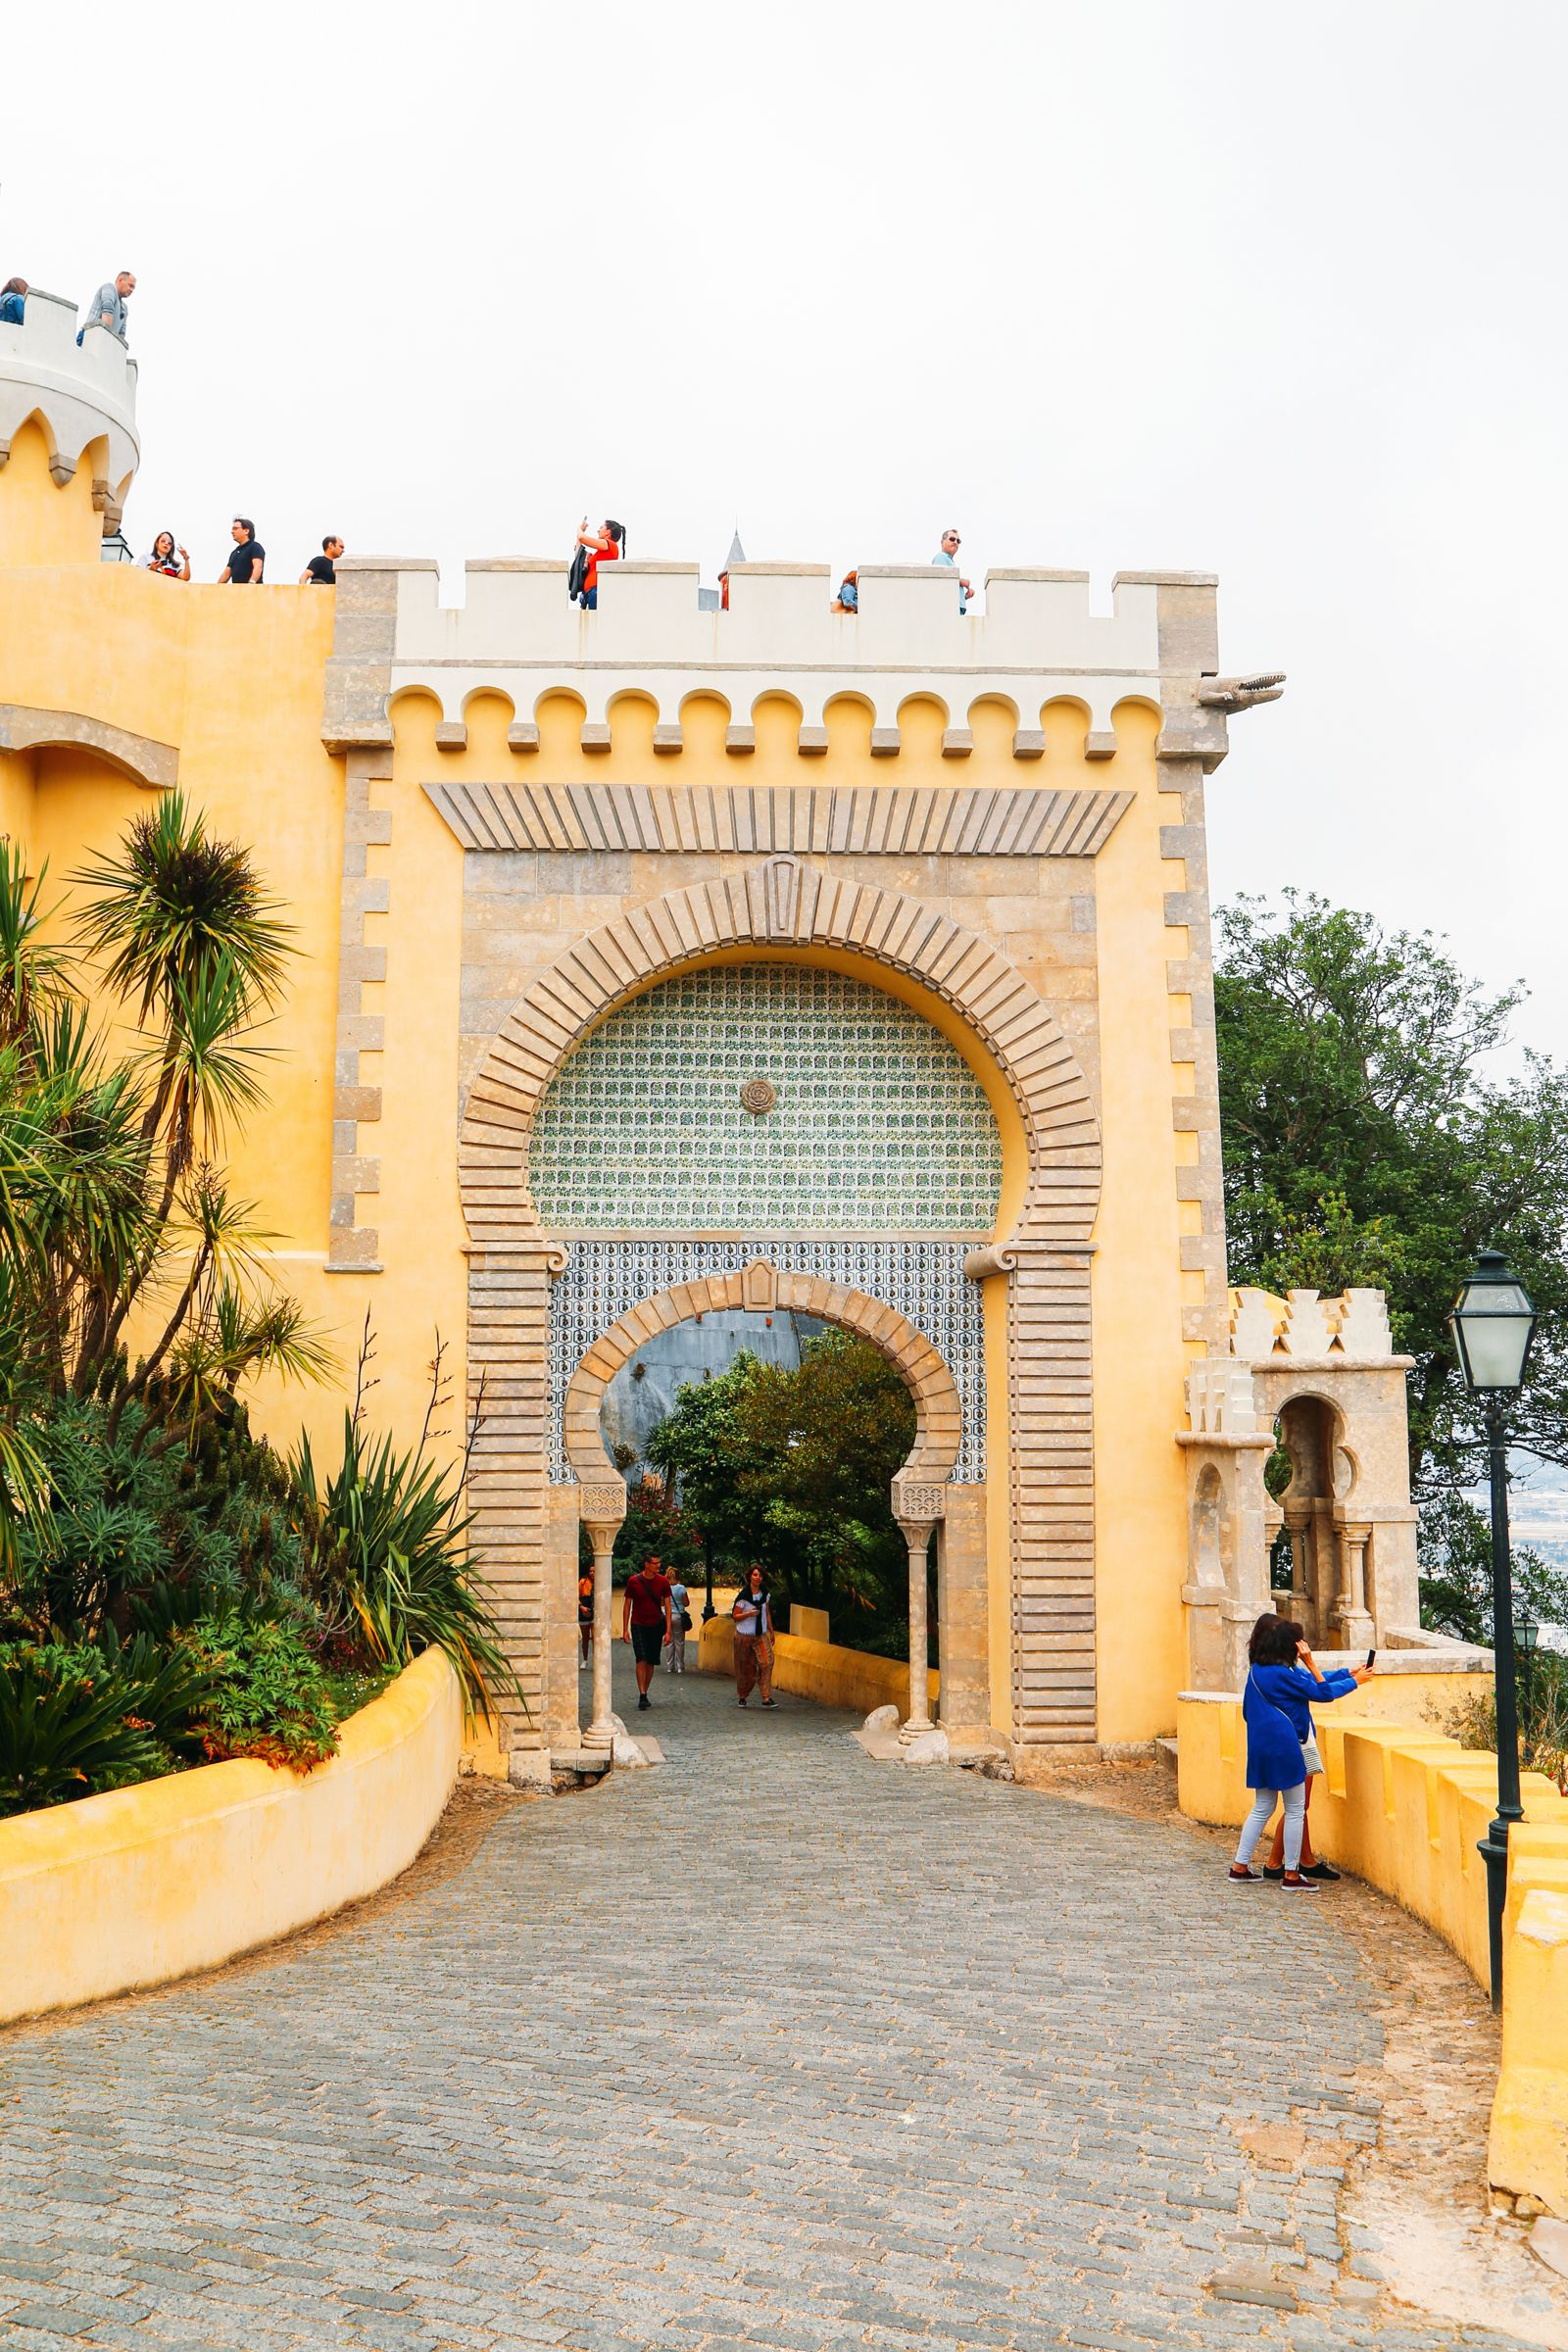 The Beautiful Pena Palace Of Sintra, Portugal (6)